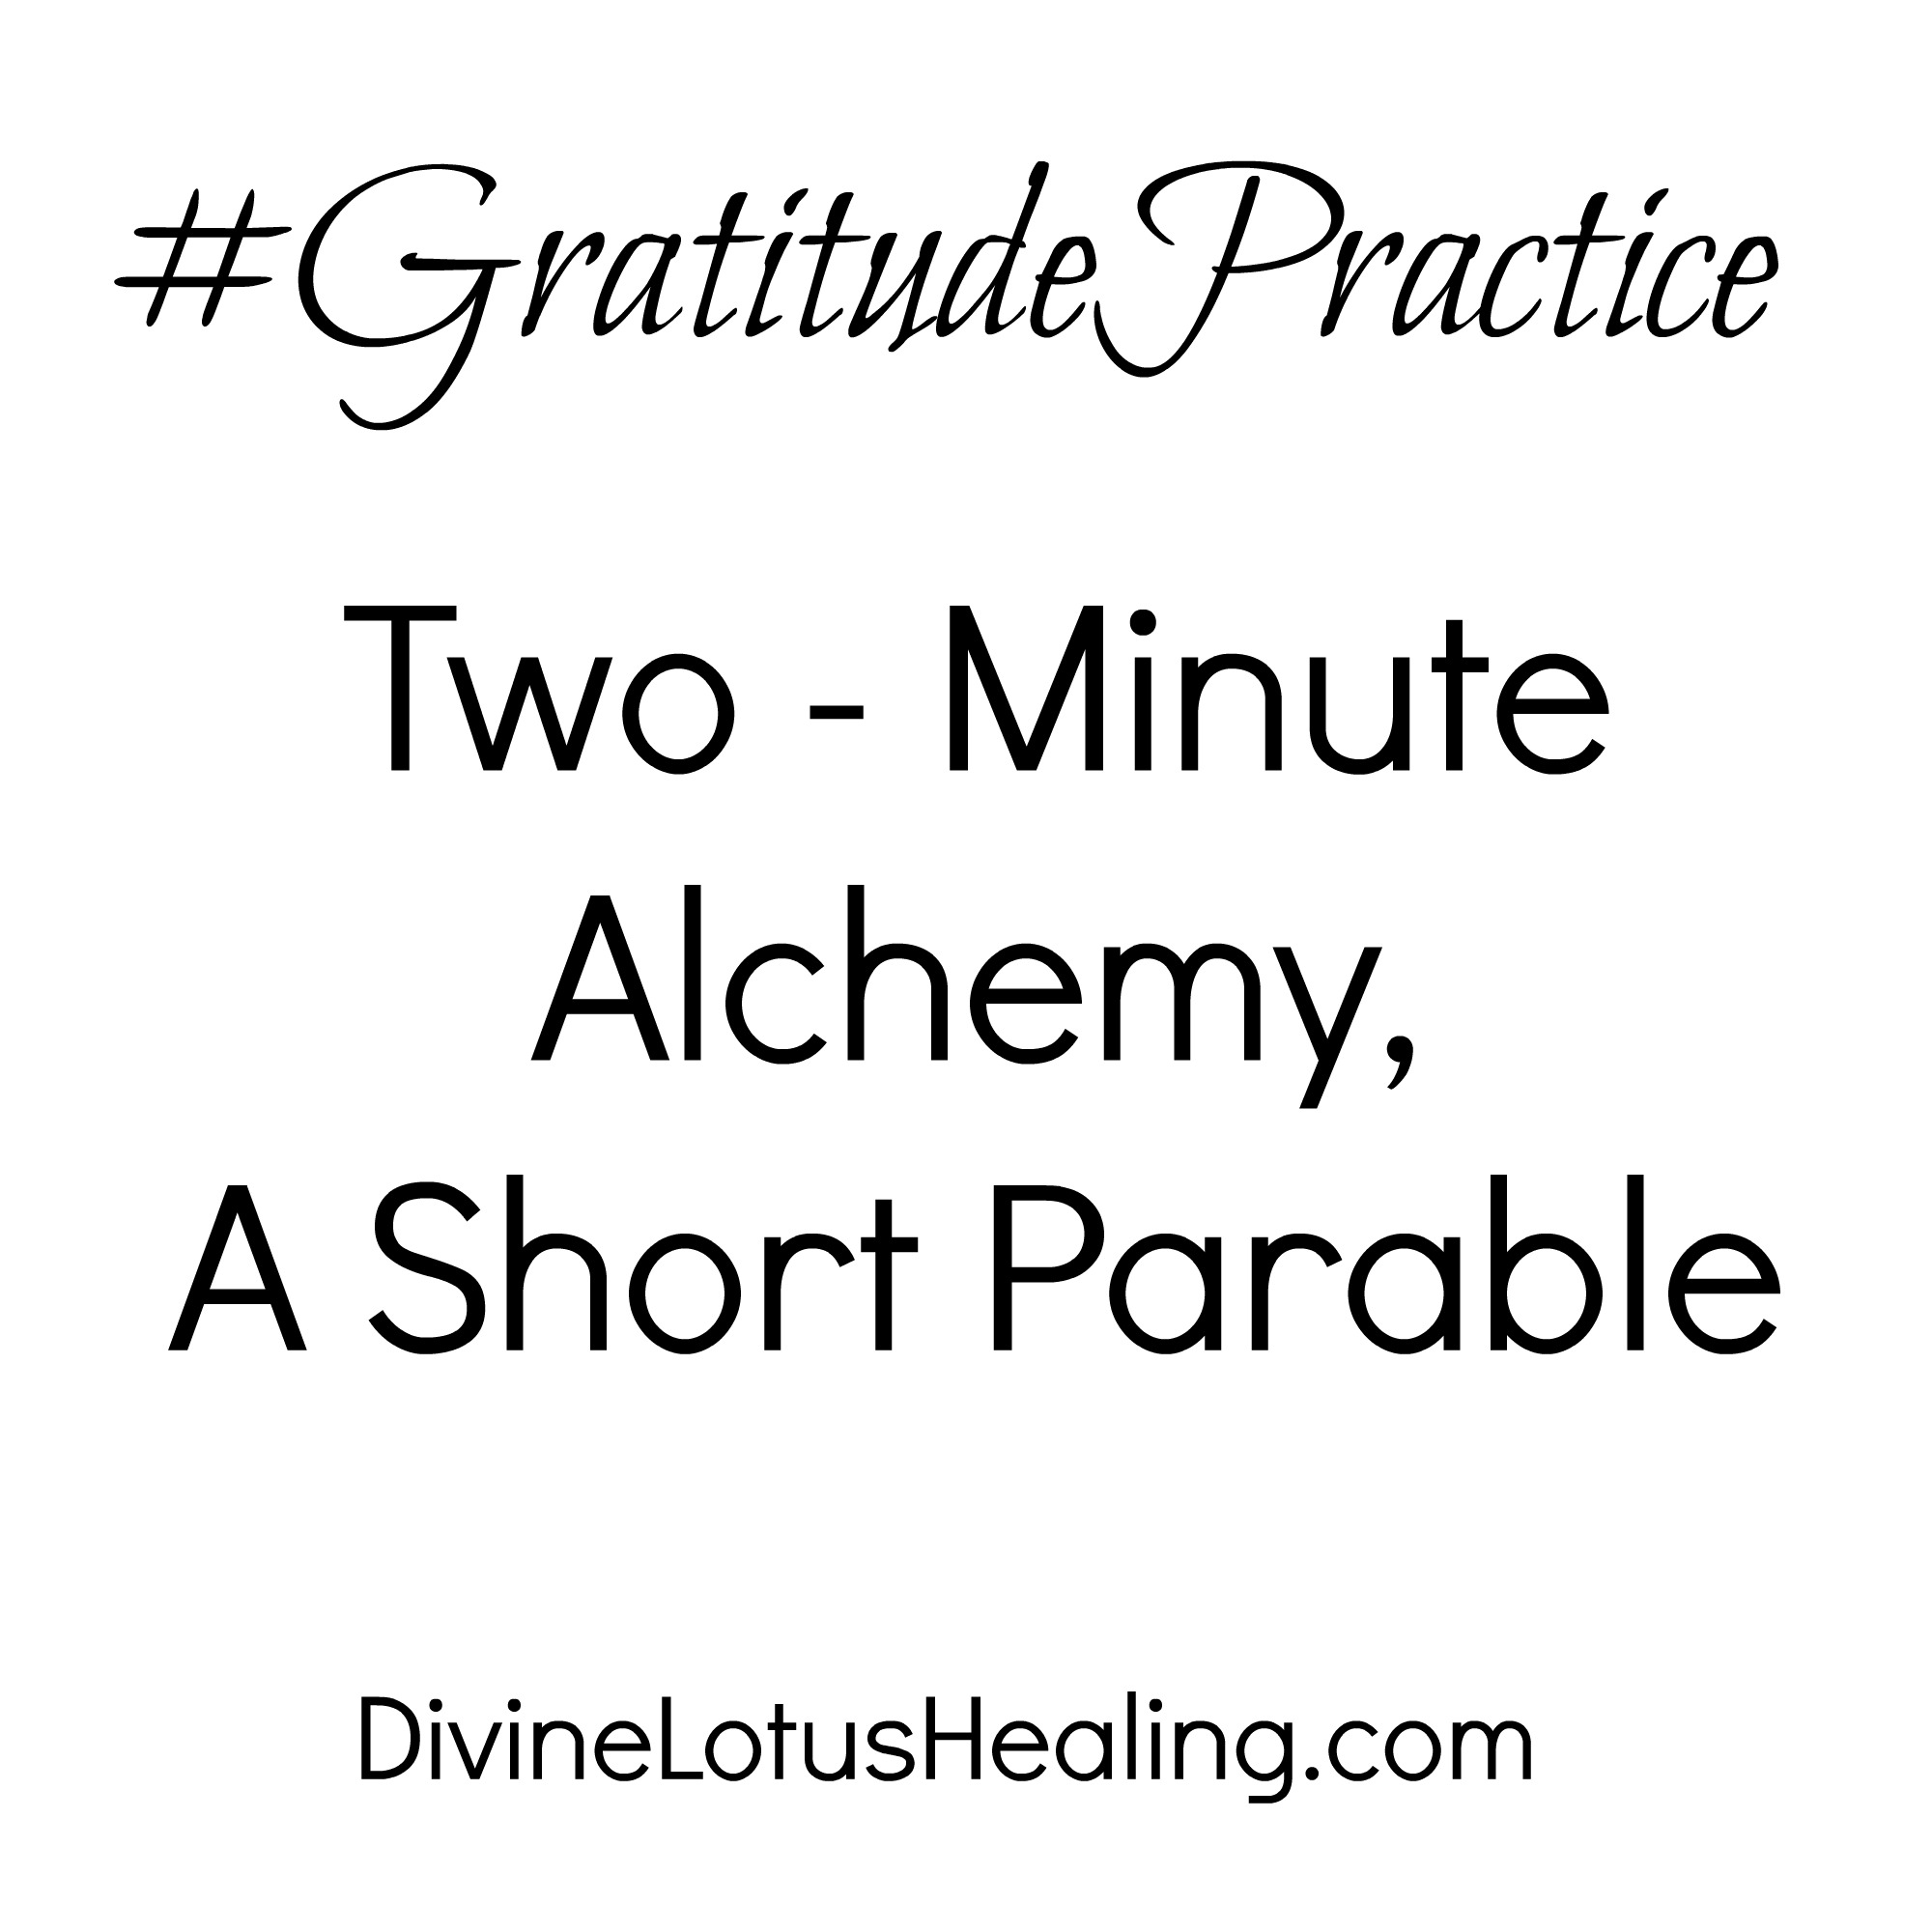 Divine Lotus Healing | Gratitude Practice: Two Minute Alchemy